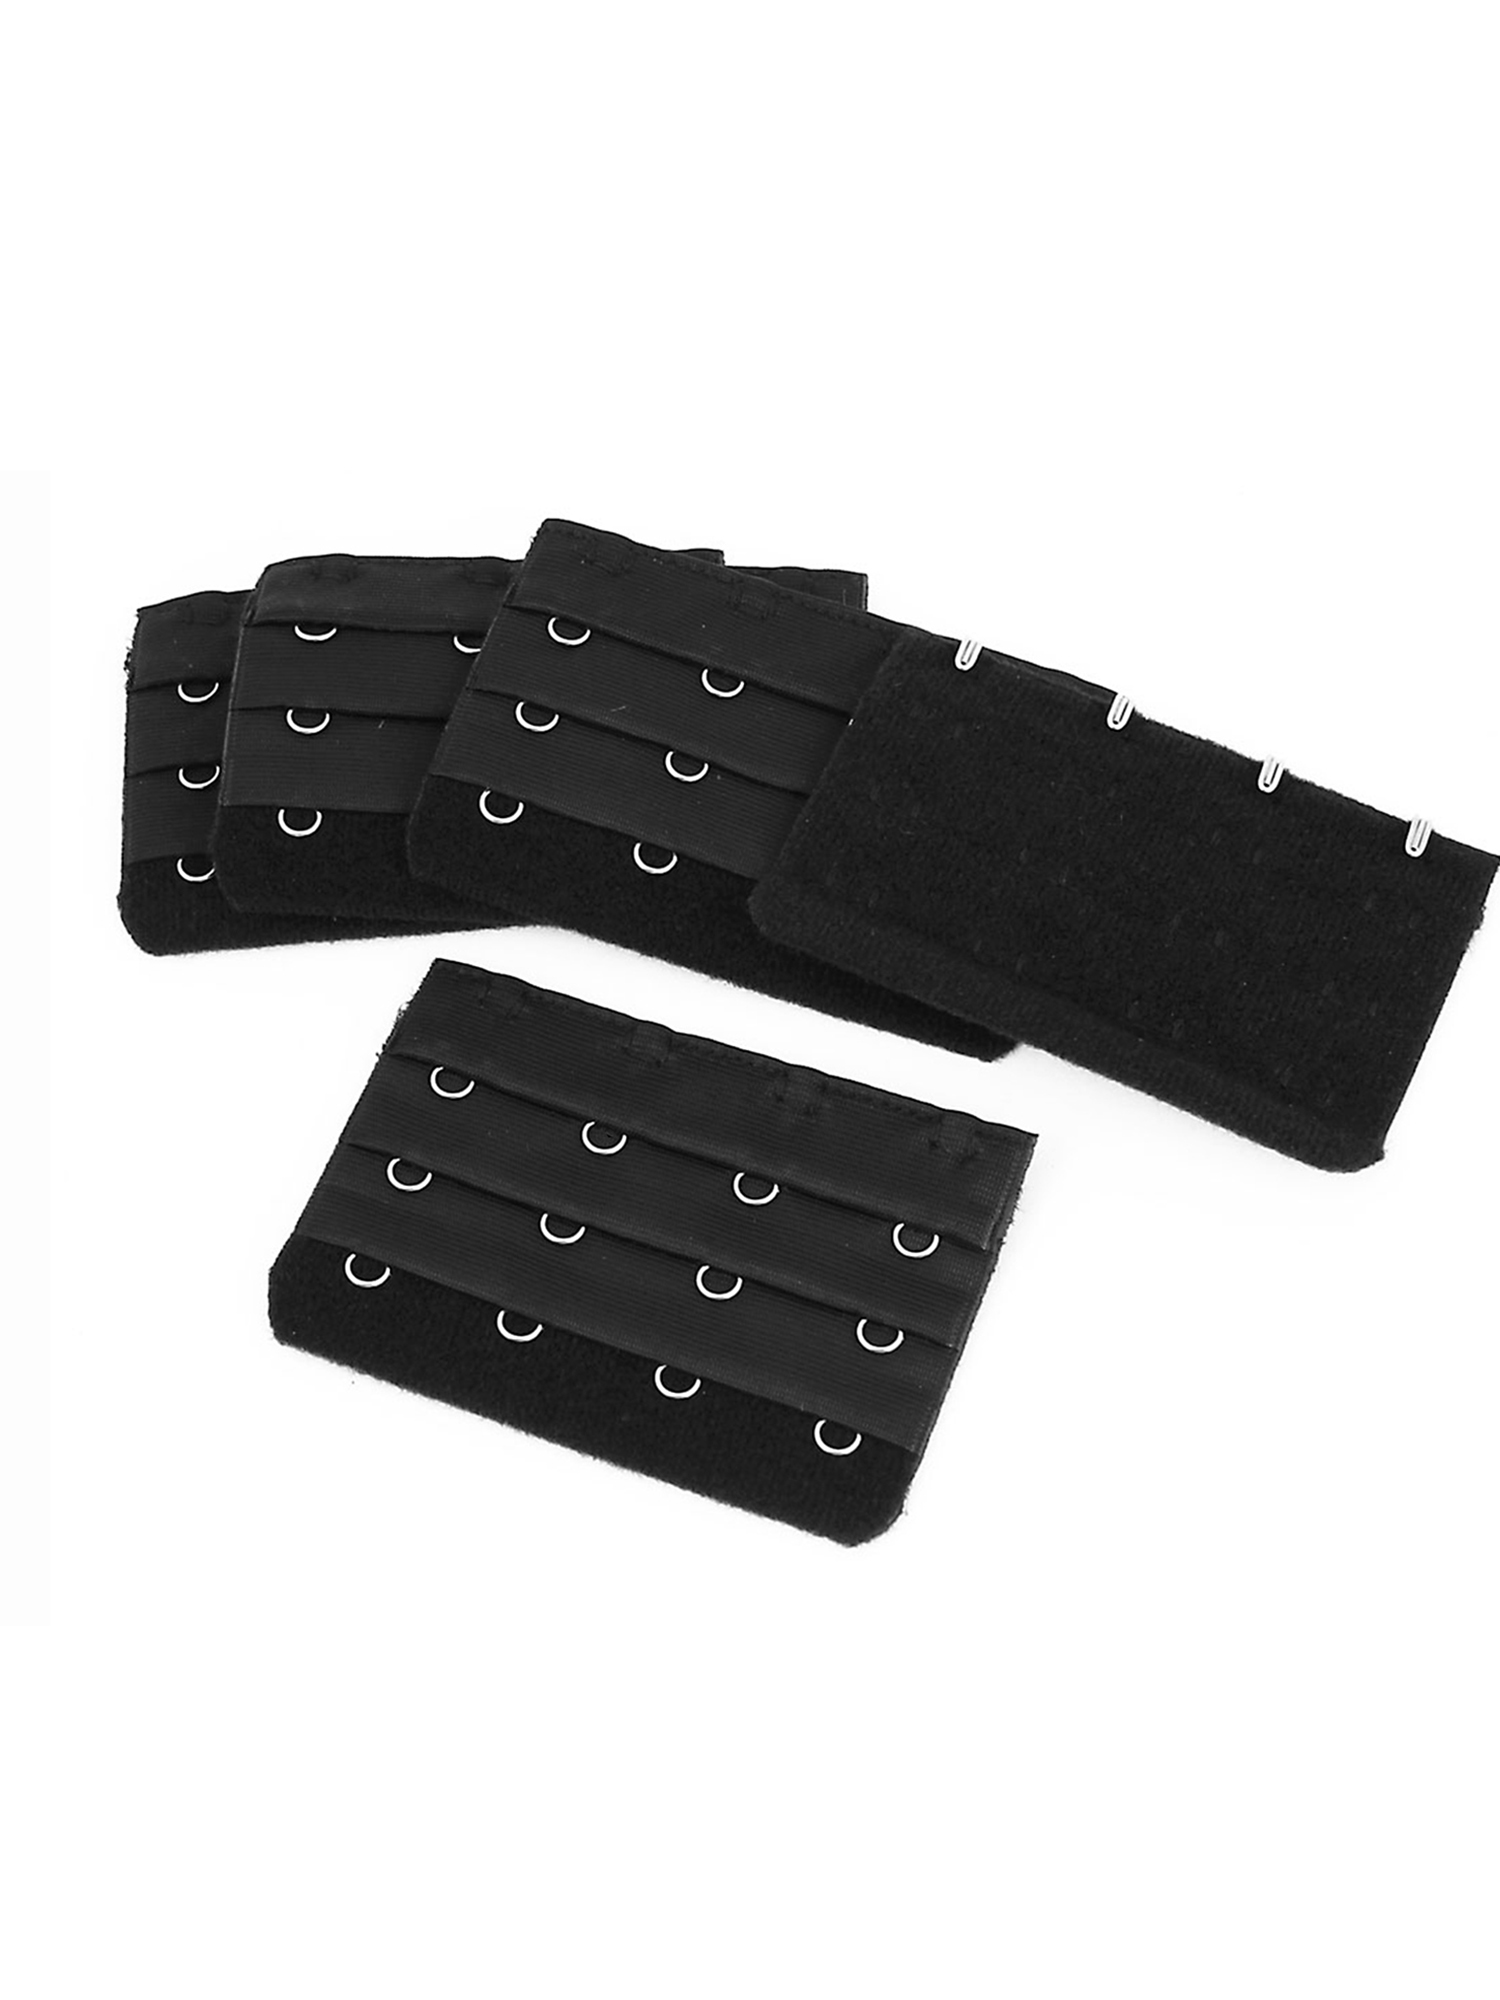 5 Pcs Black 3x4 Positions Hooks Eye Tape Bra Strap Extension Underwear Buckle